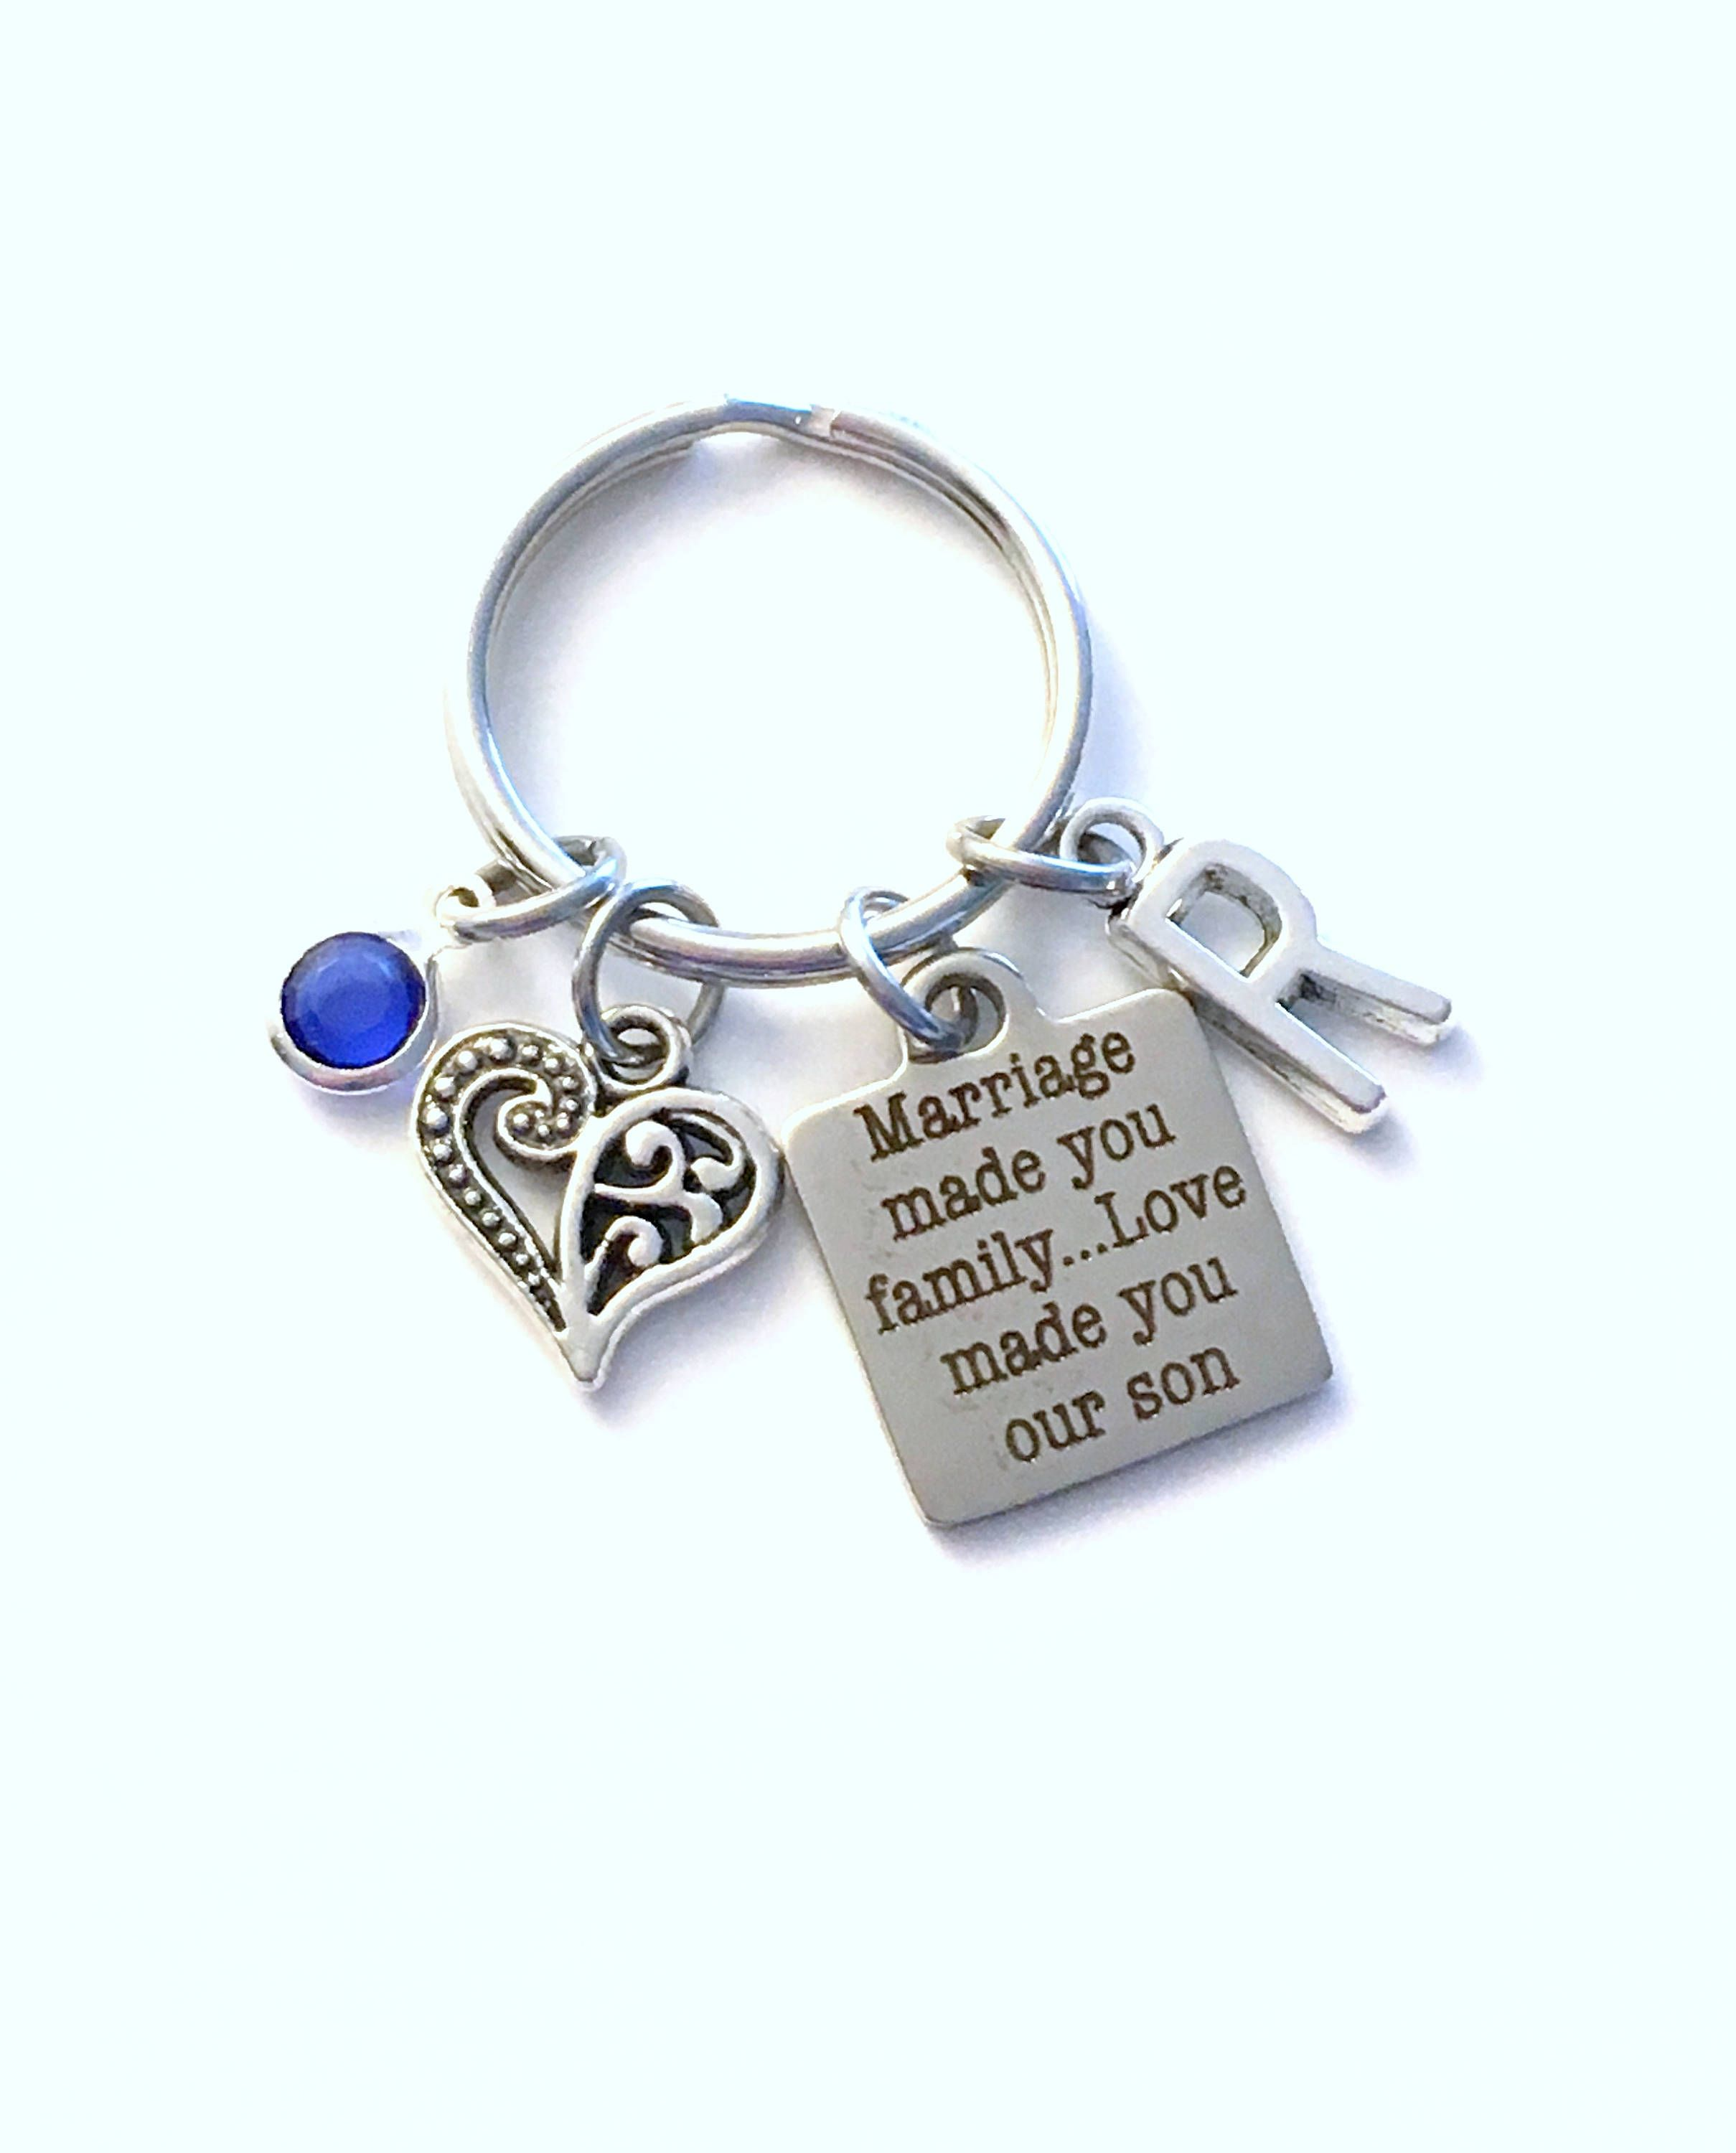 Gift for son in law keychain marriage made you family